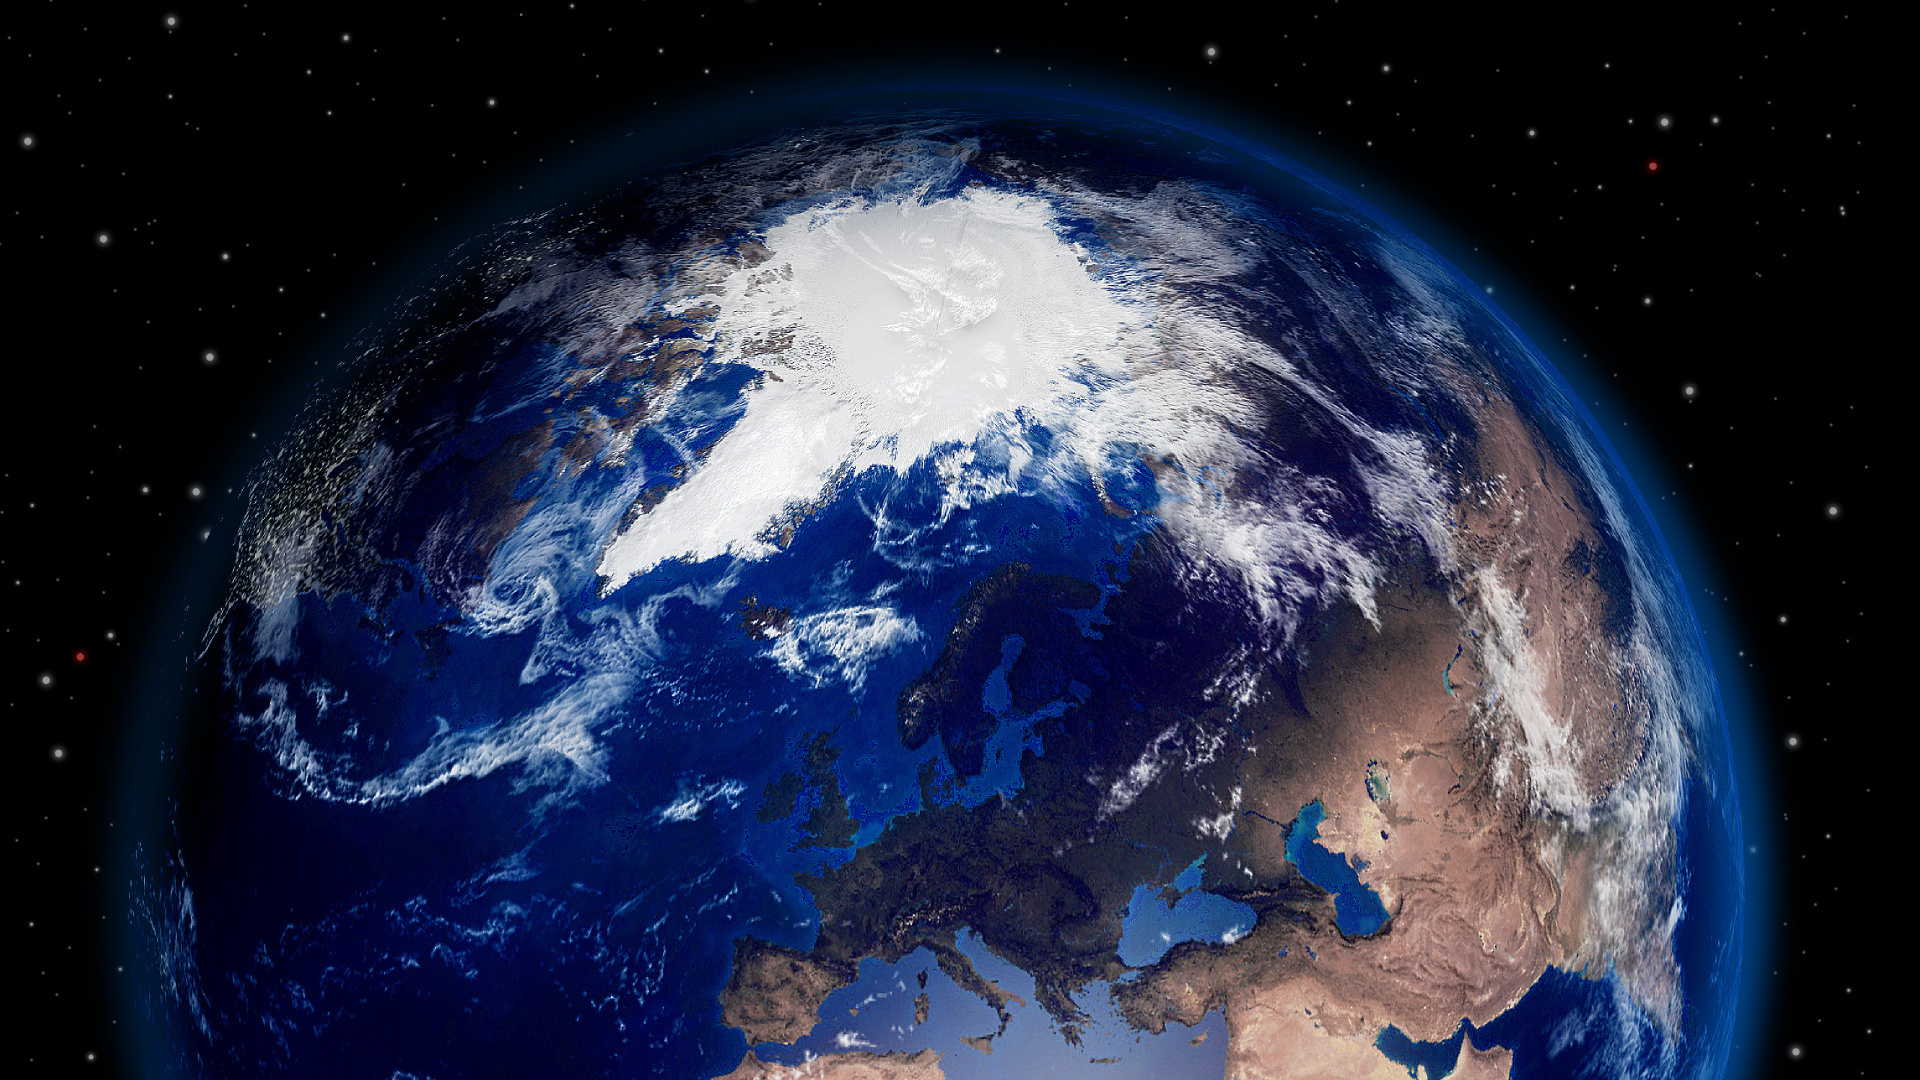 Space_Earth_from_Space_082151_